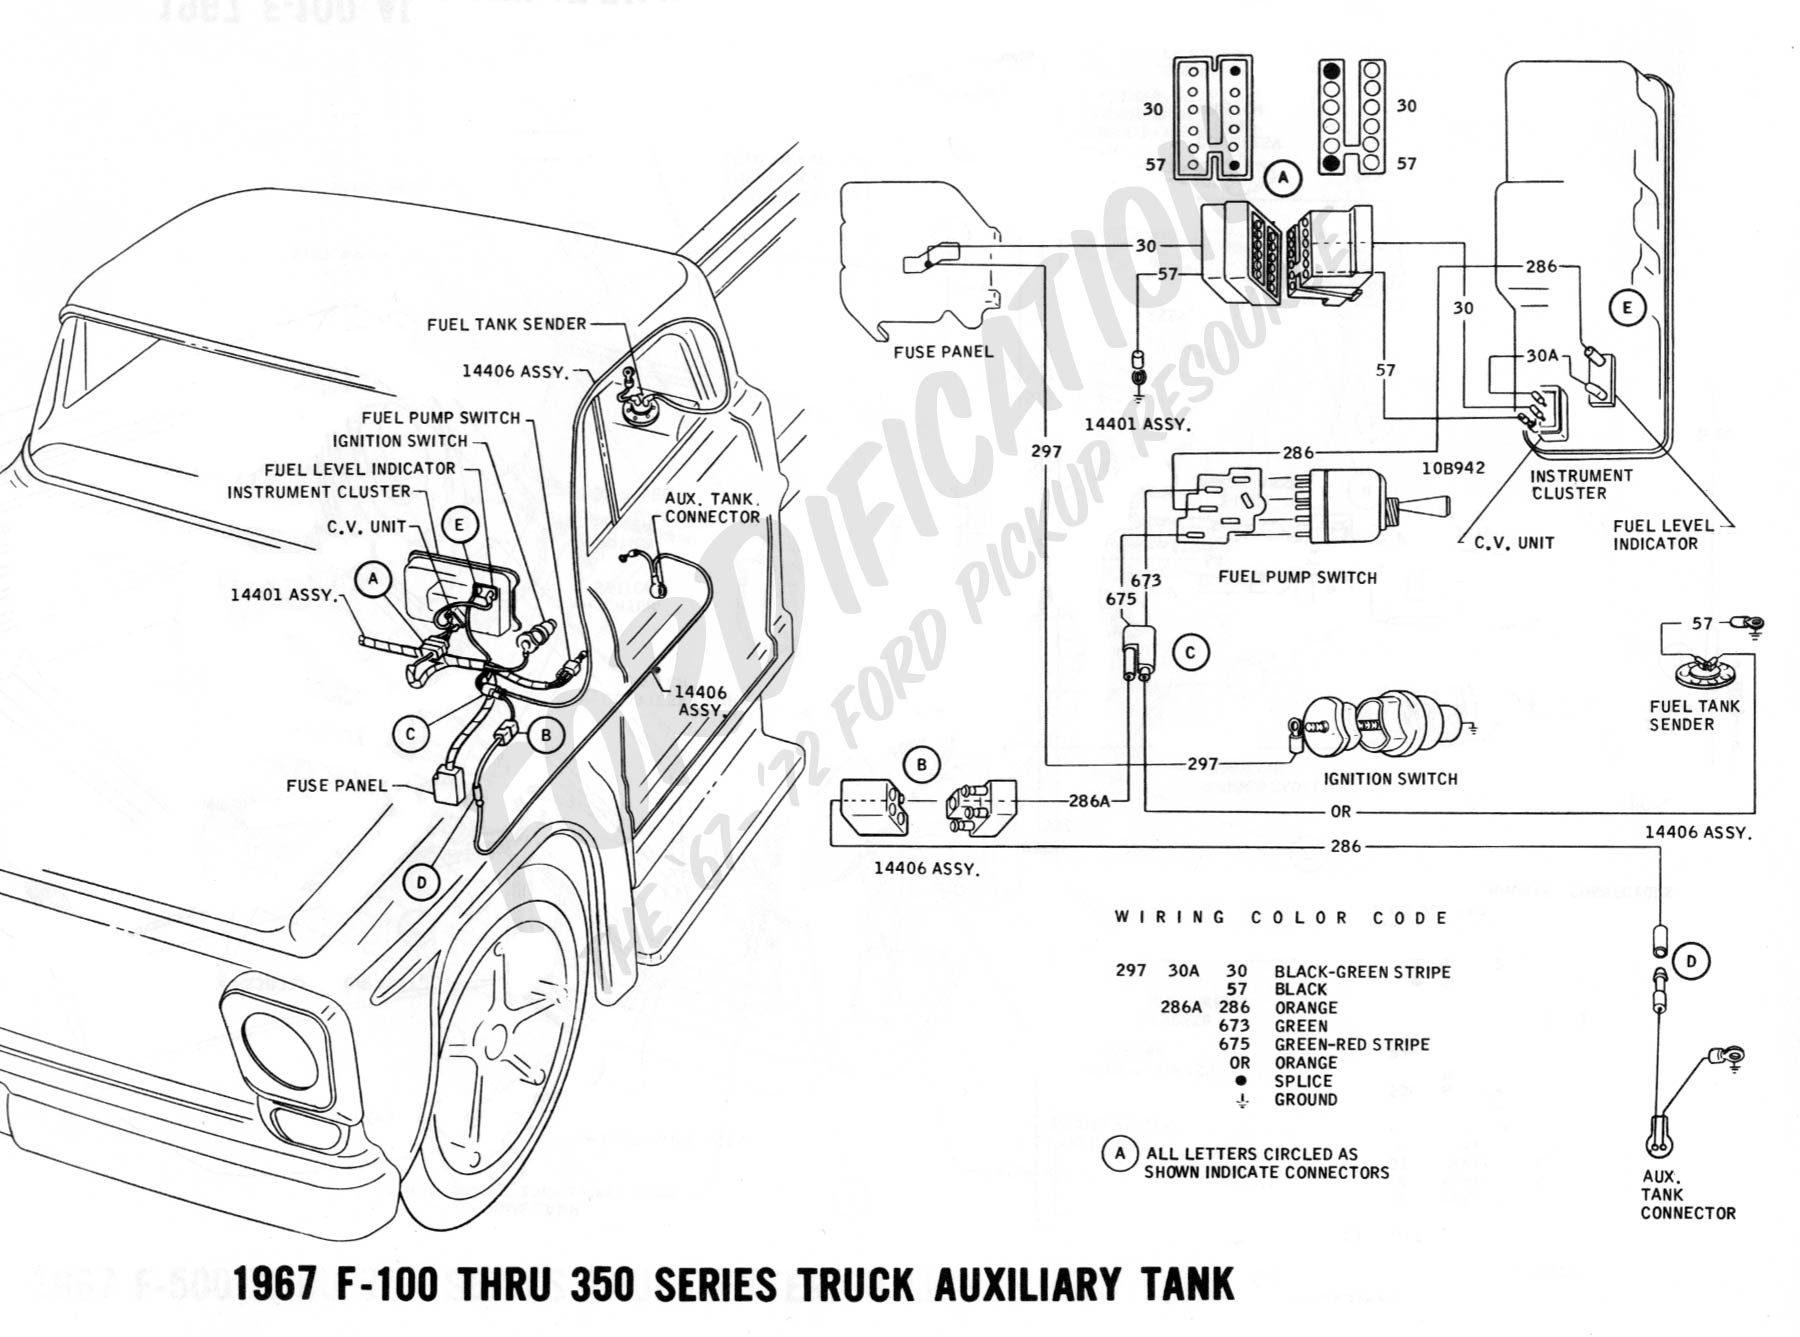 1992 ford f150 xlt radio wiring diagram